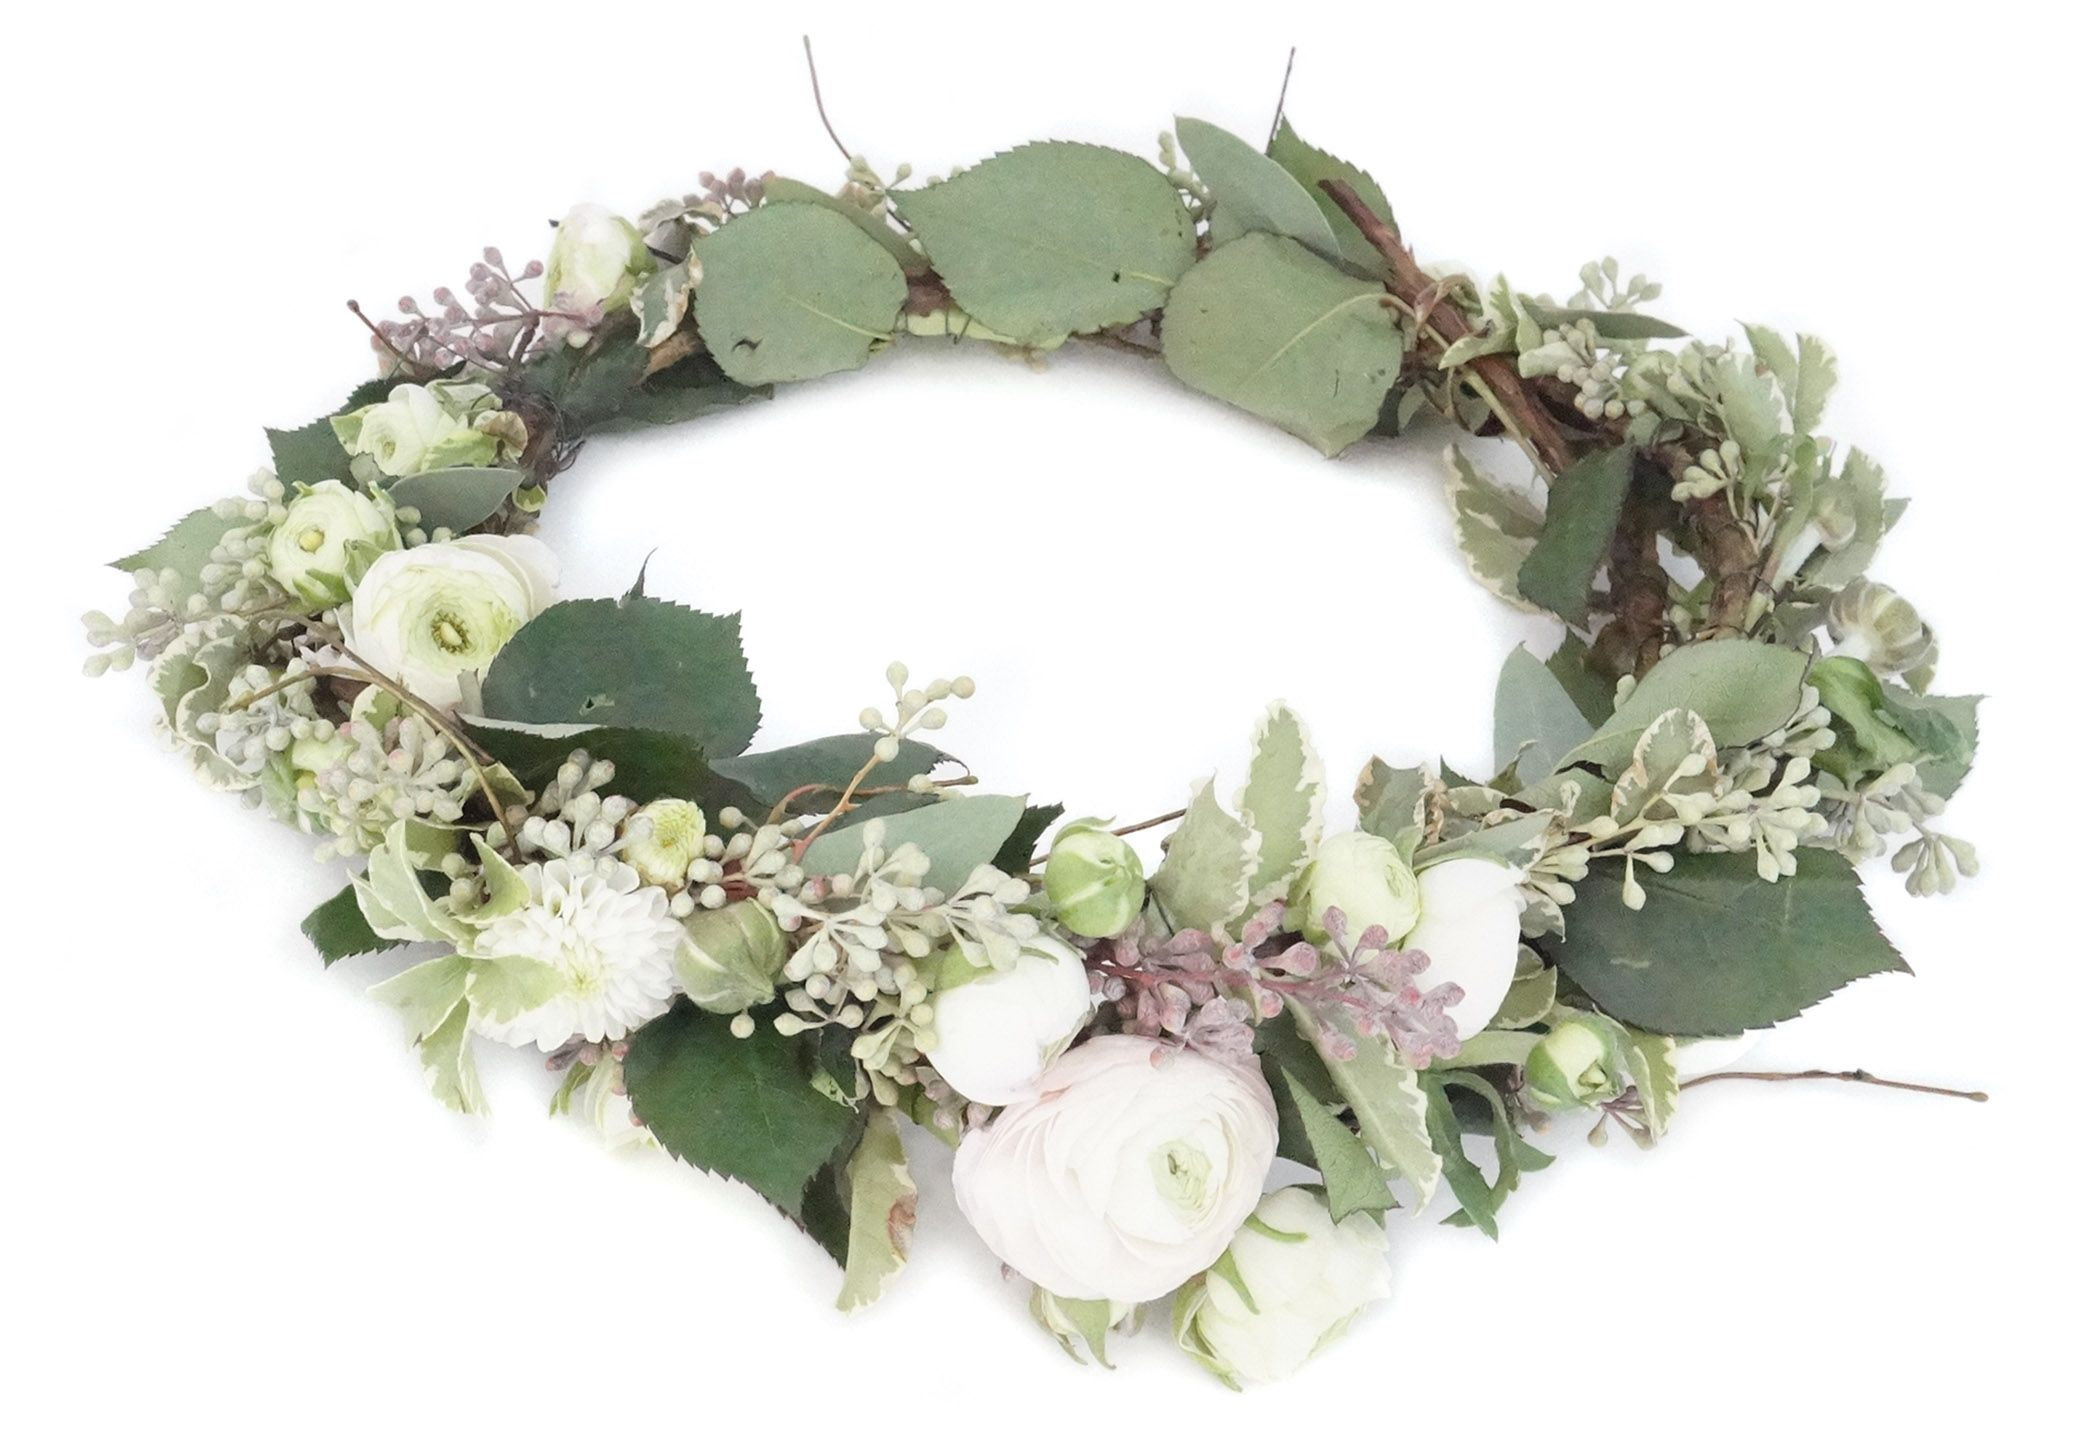 How to make a fresh flower crown fresh flowers flower crowns and how to make a fresh flower crown canadian living izmirmasajfo Gallery